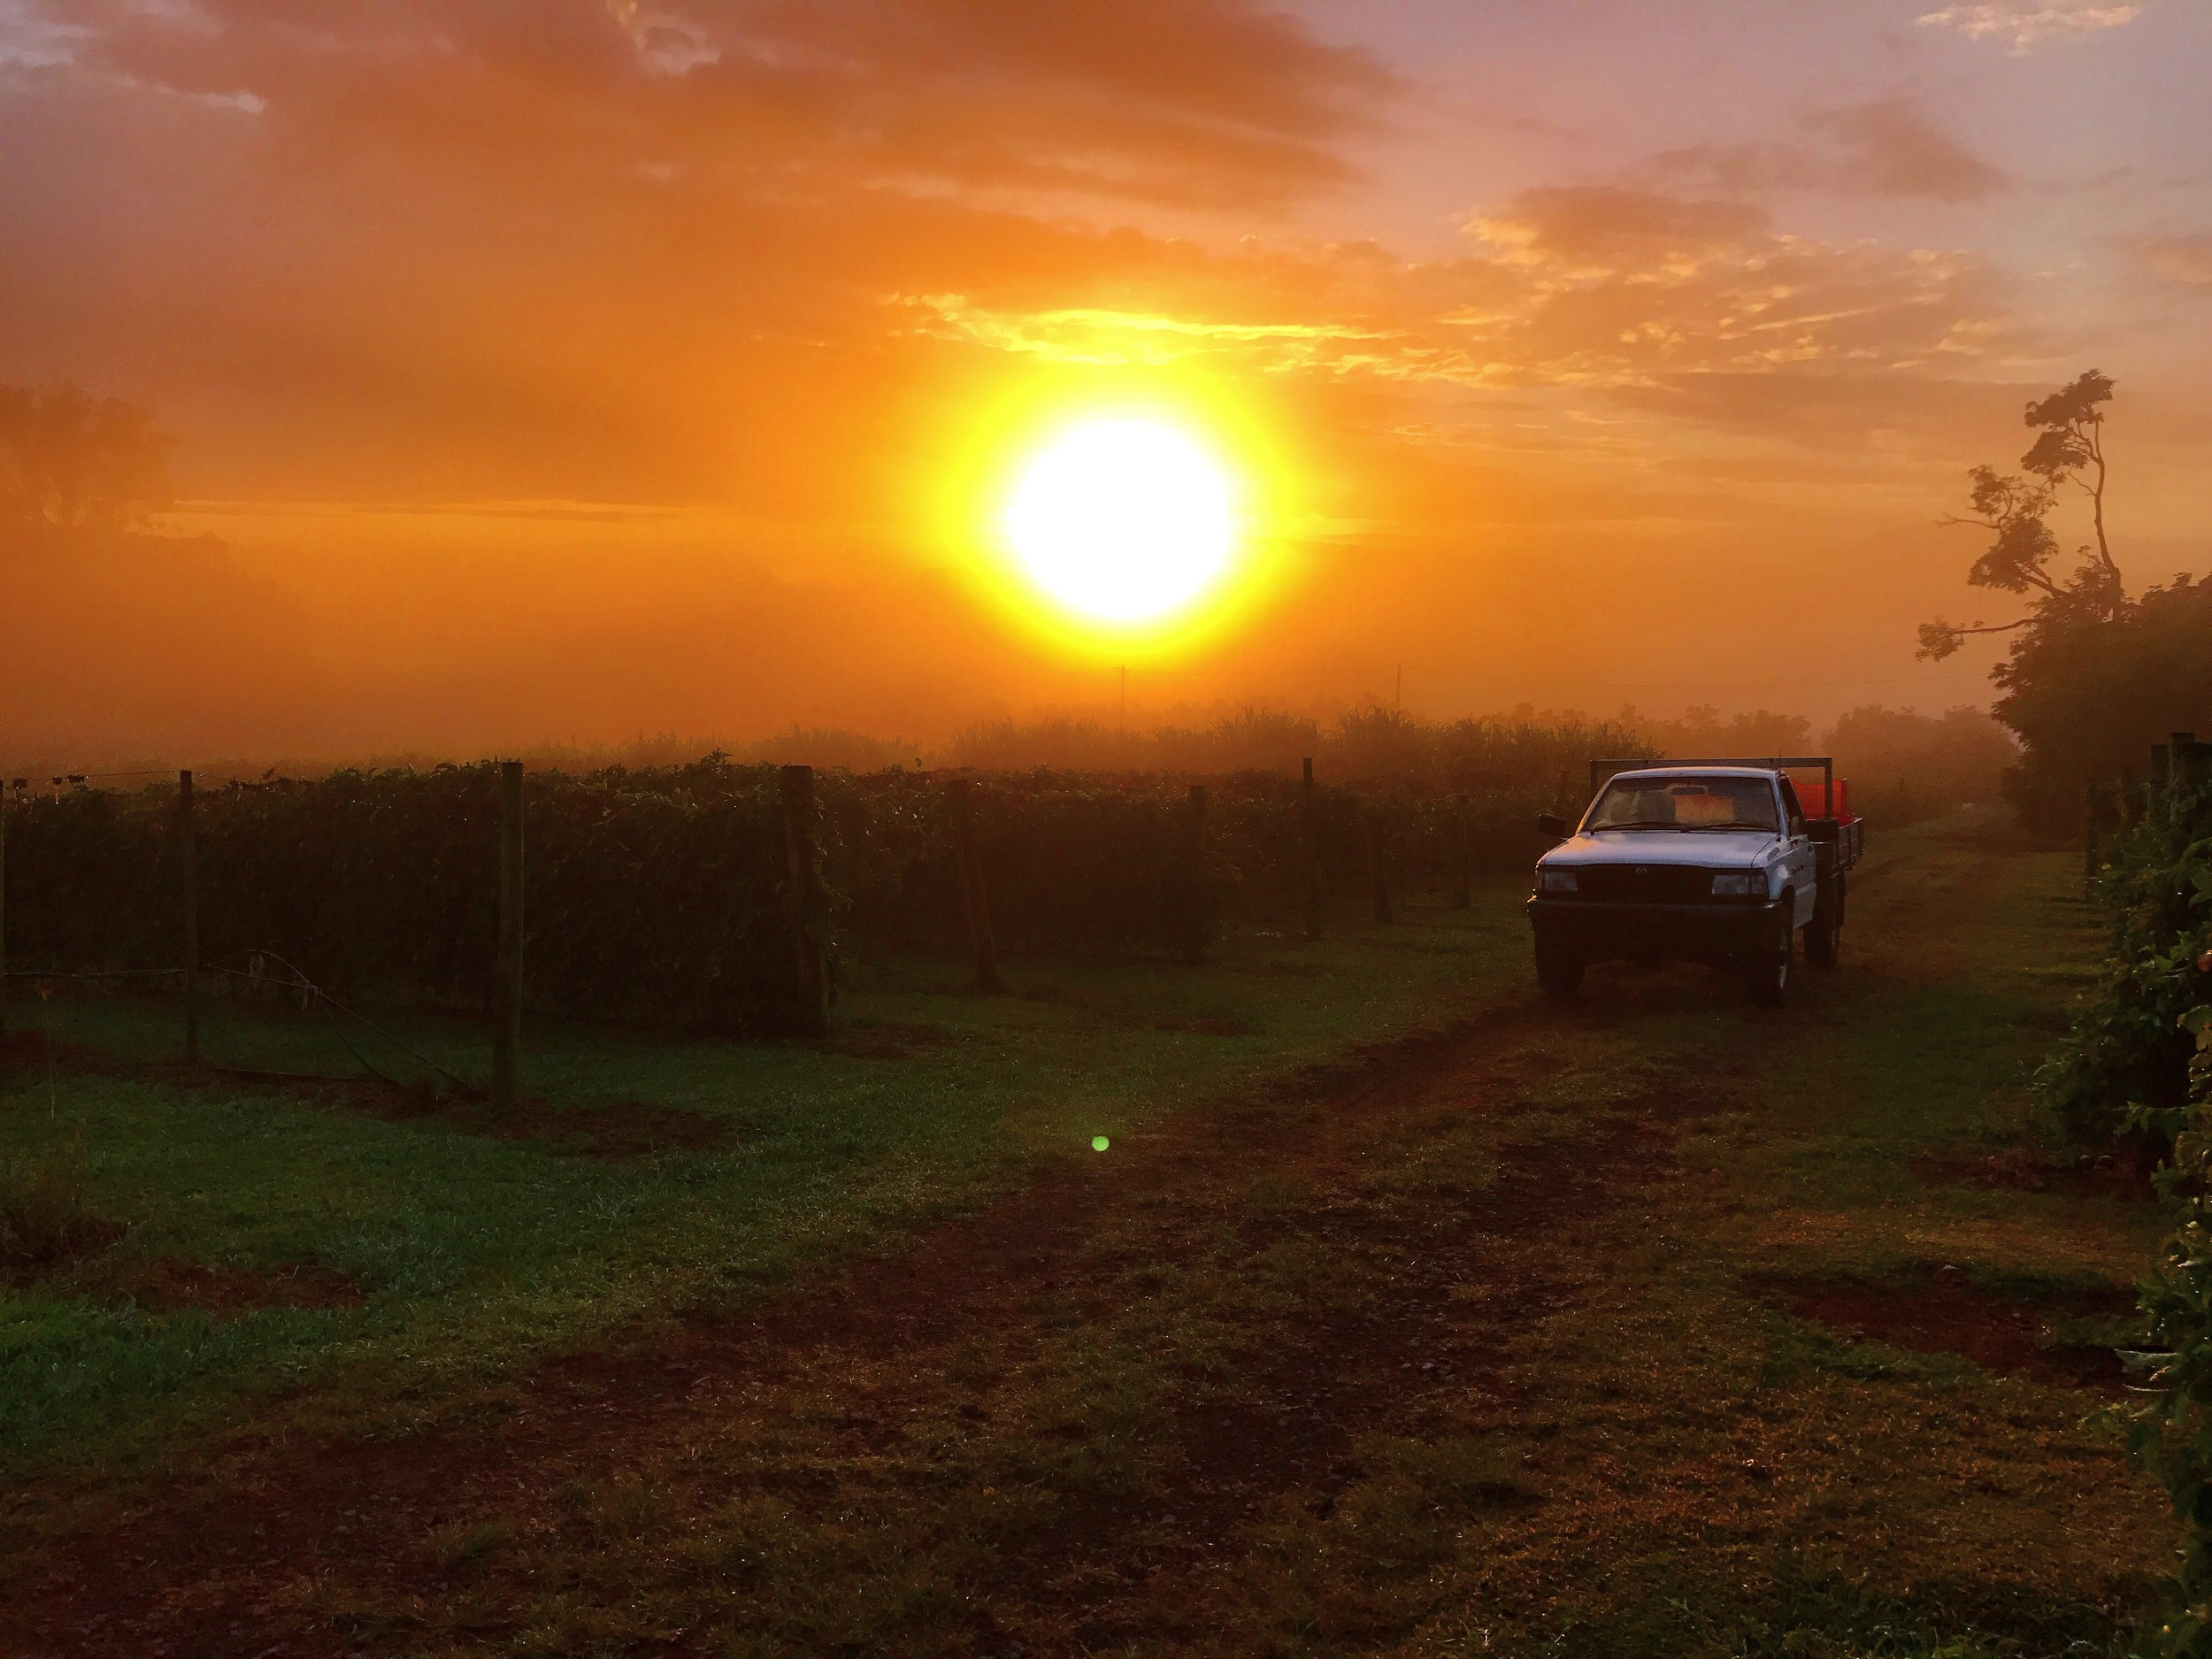 The sun rising at 6:30am on the passionfruit farm